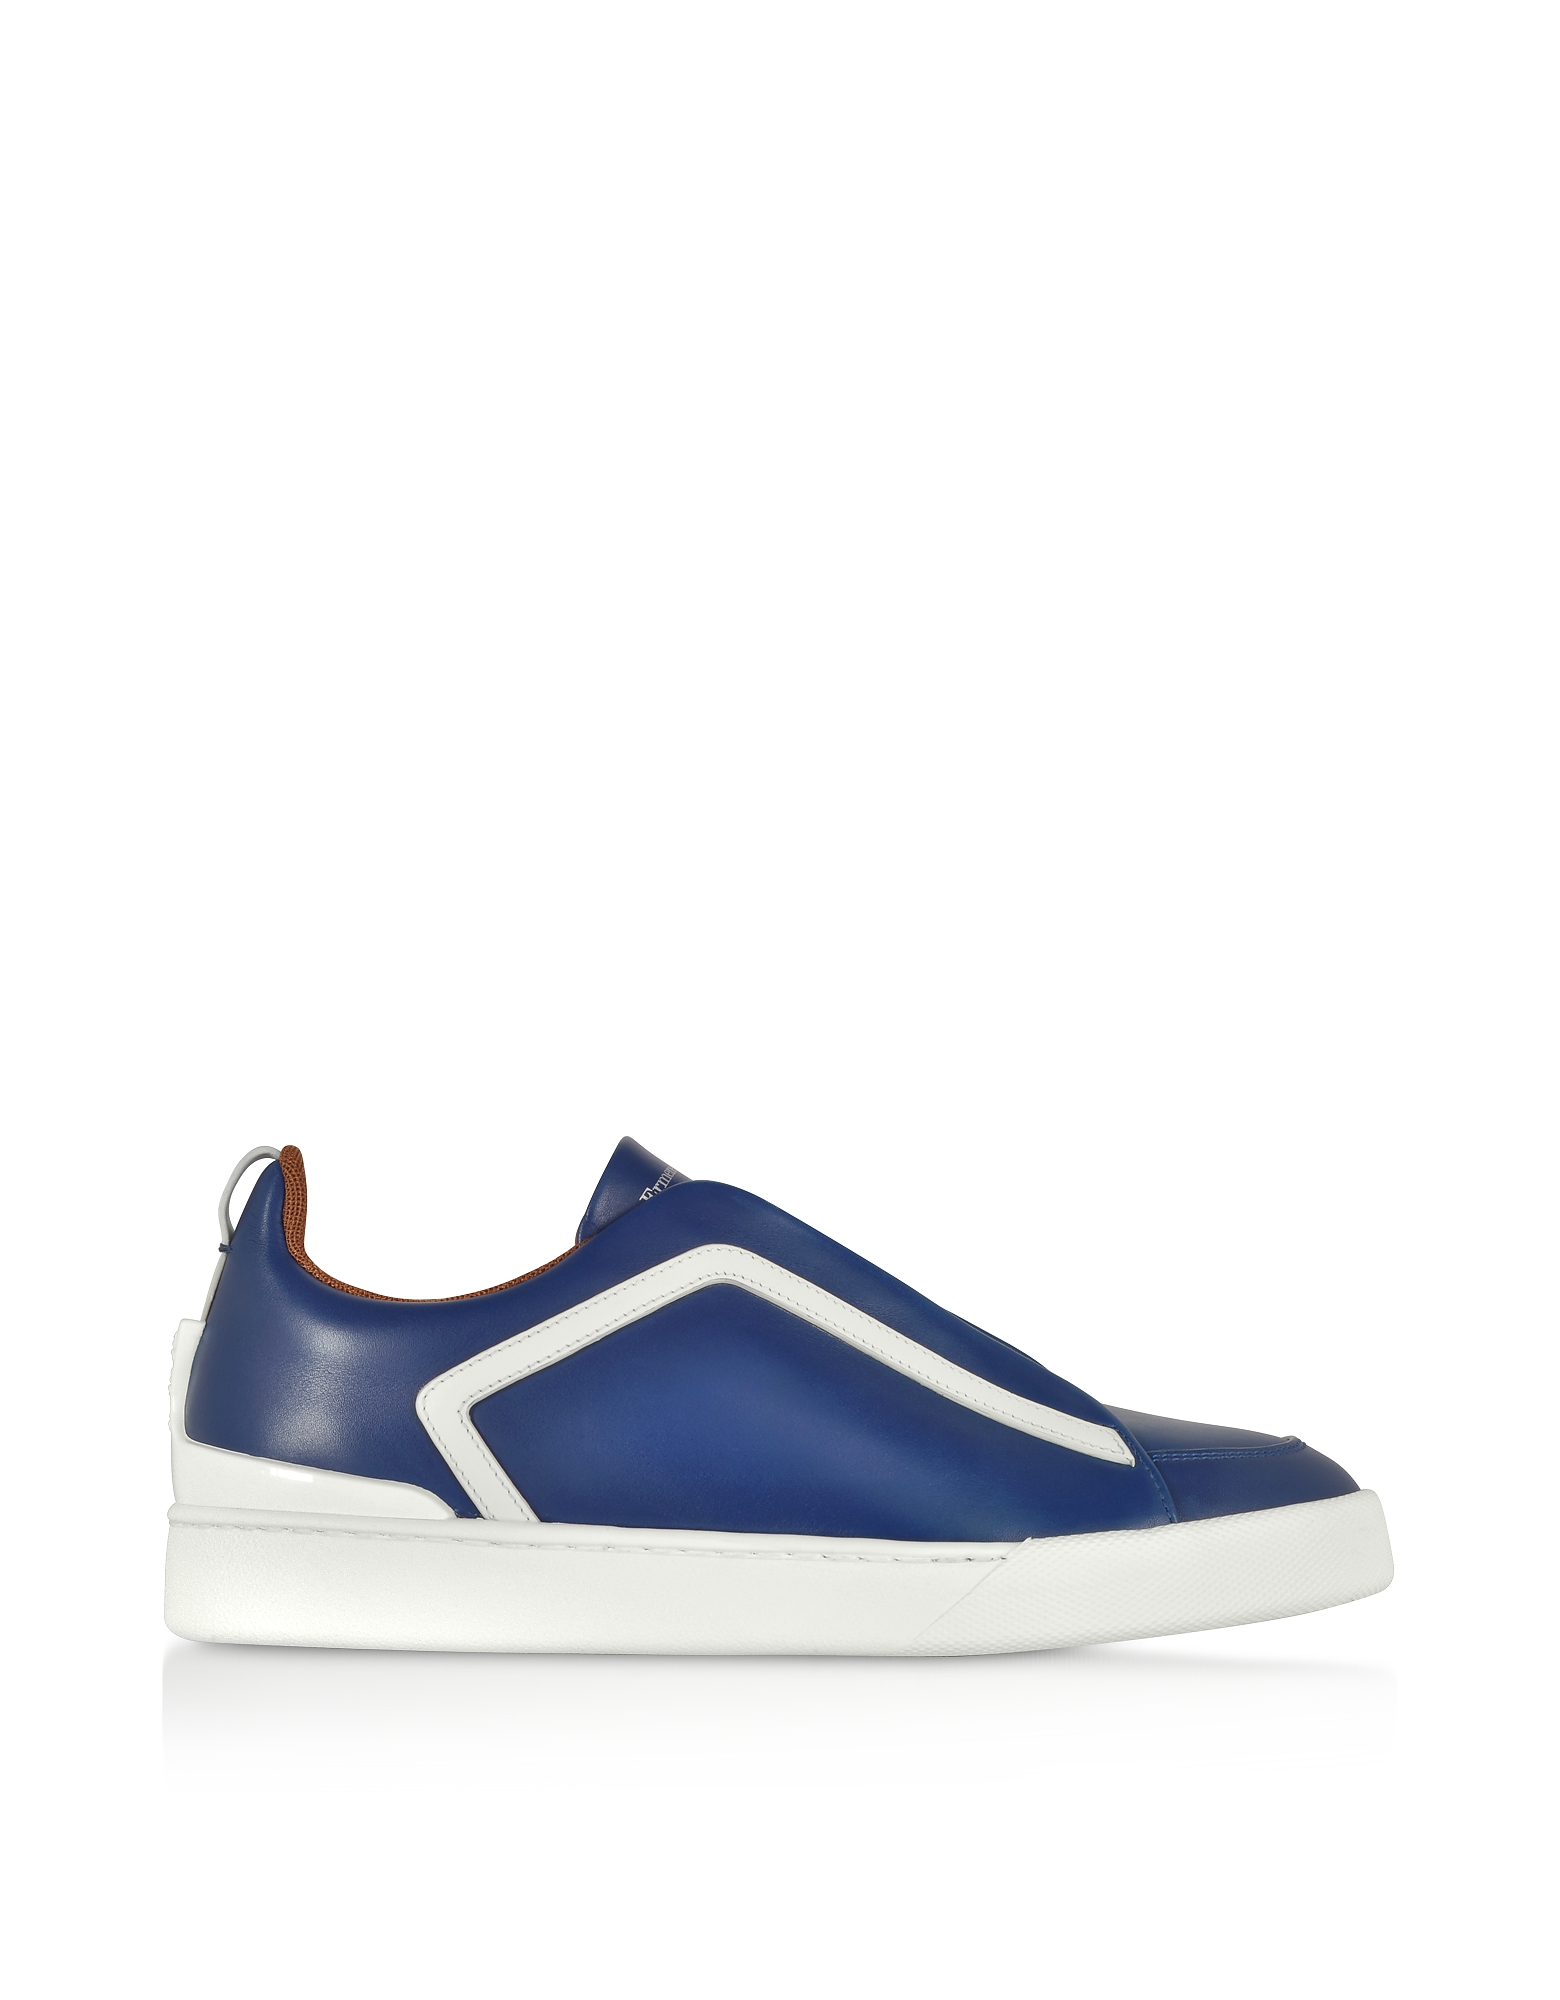 Ermenegildo Zegna Shoes, Triple Stitch Blue Leather Low Top Sneakers